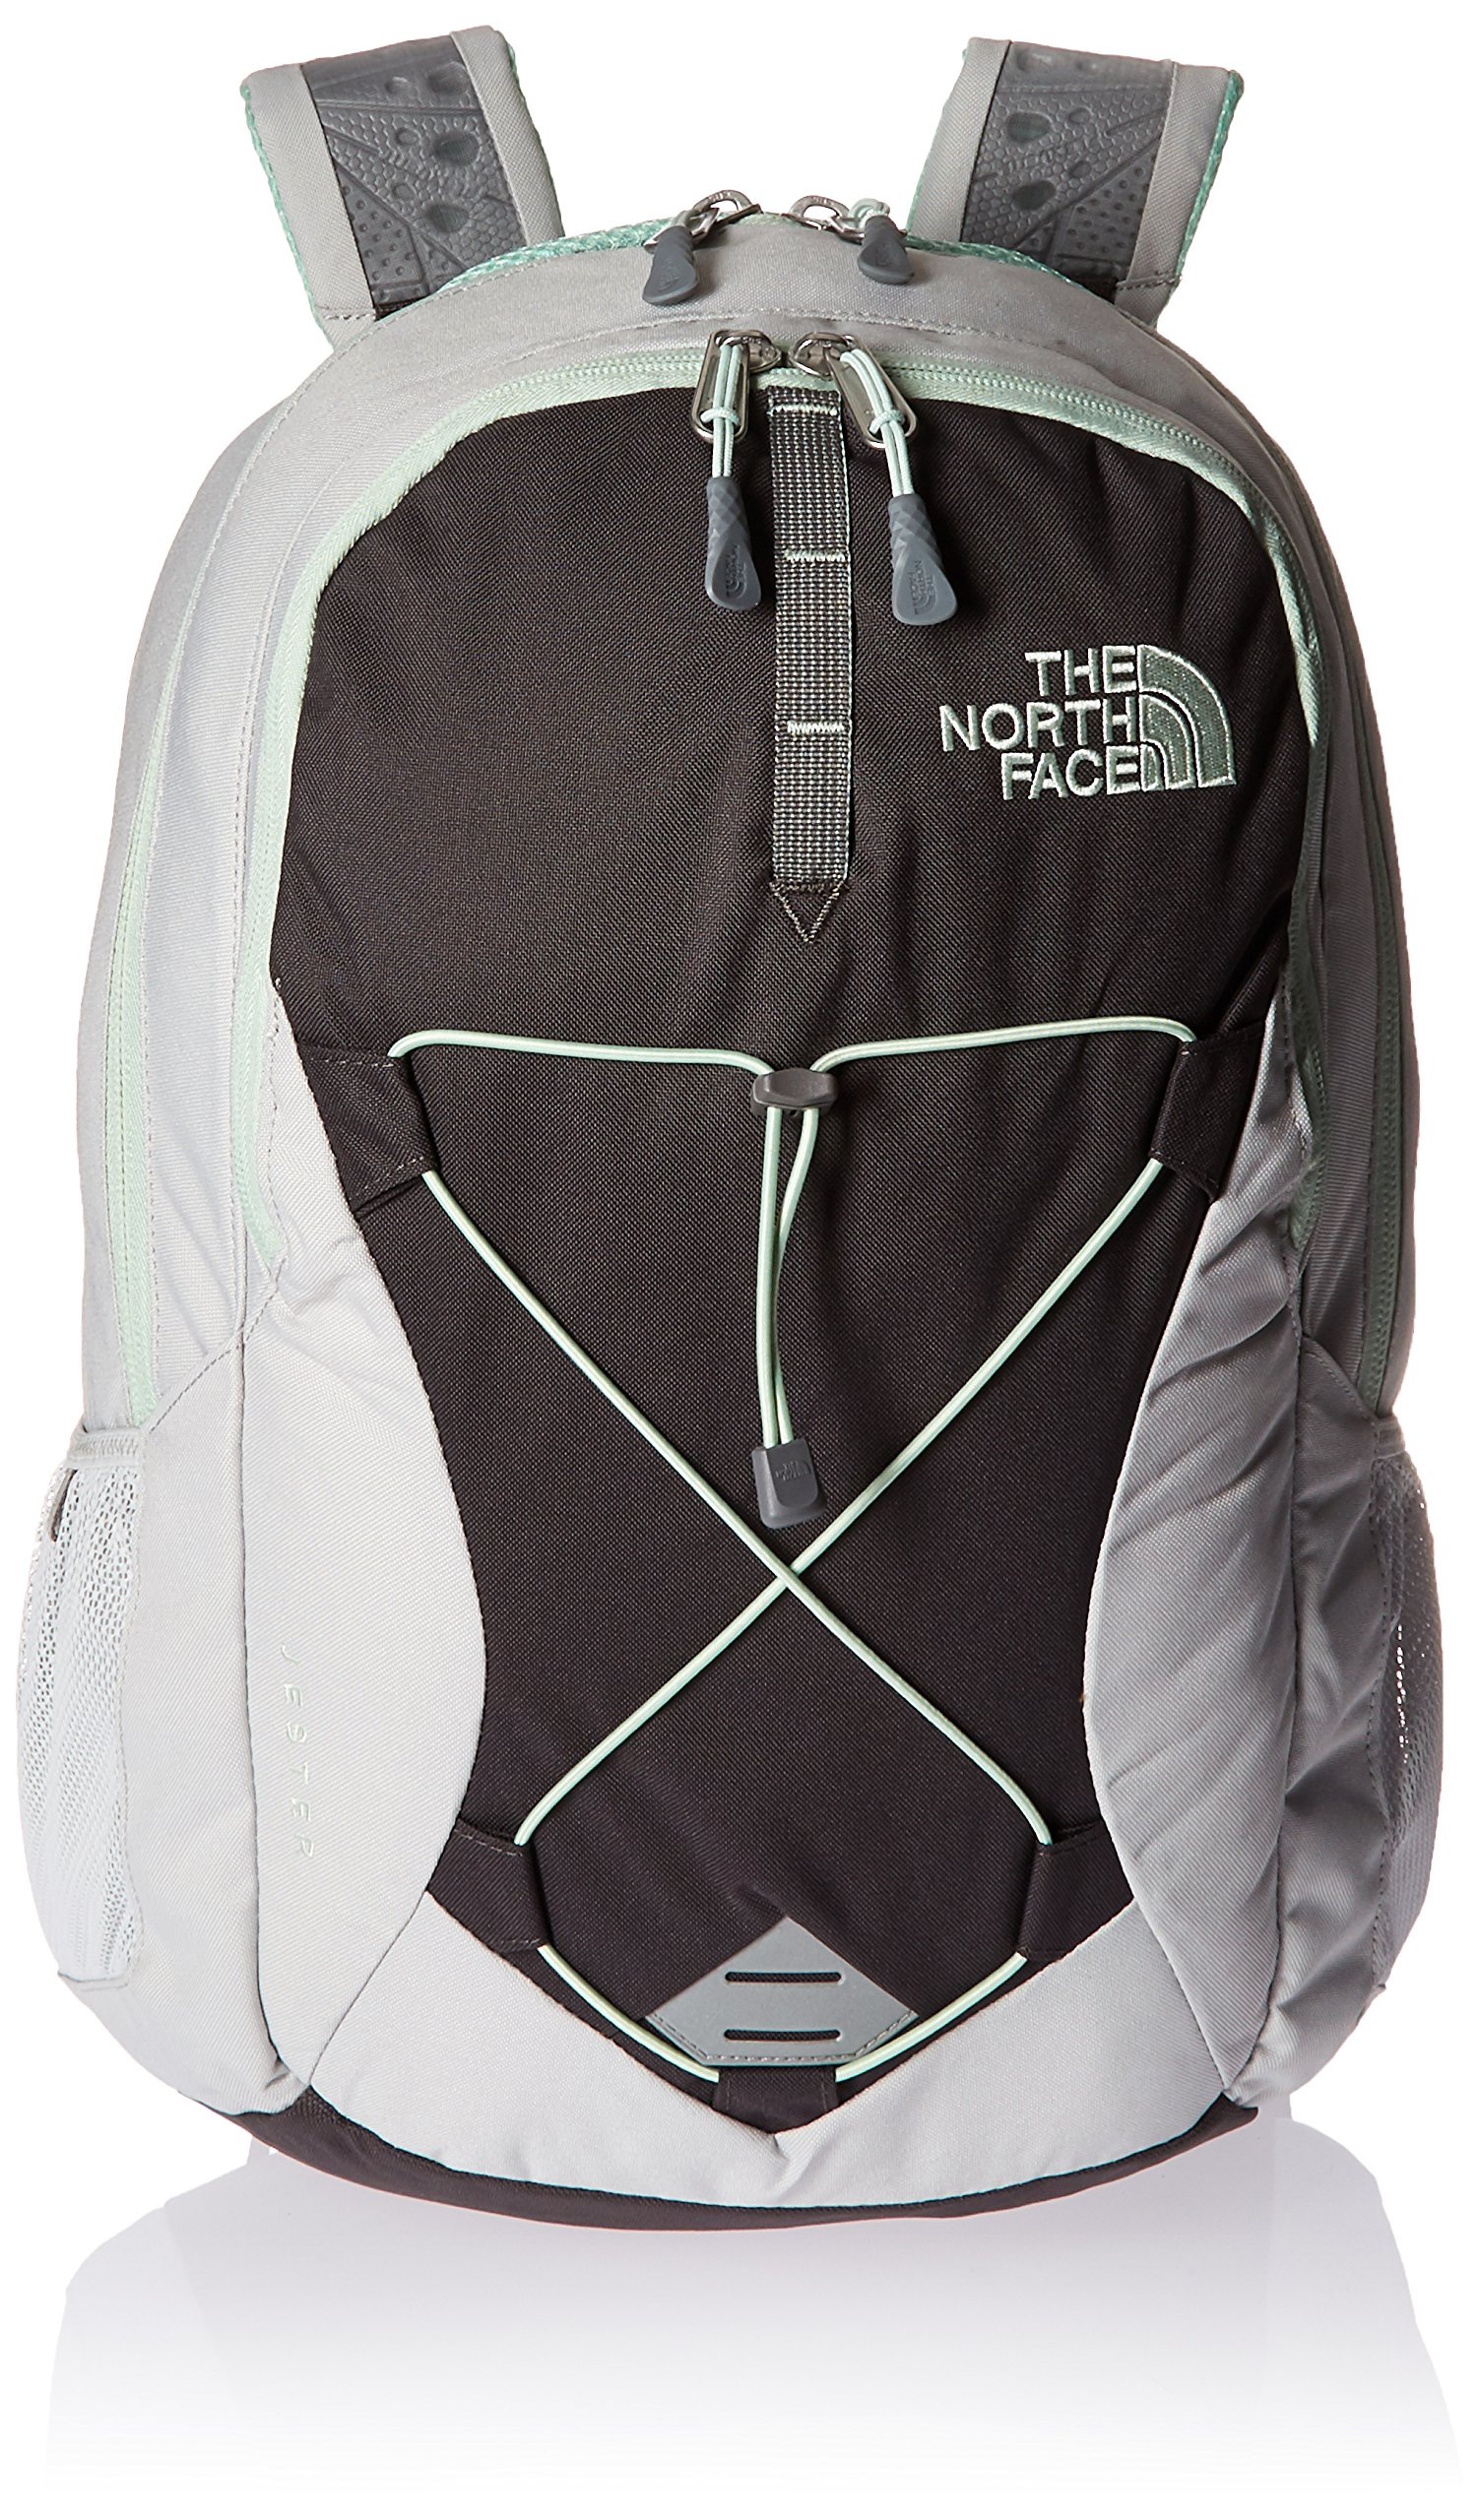 The North Face Women's Jester Laptop Backpack 15 Inch- Sale Colors (Lunar Ice by The North Face